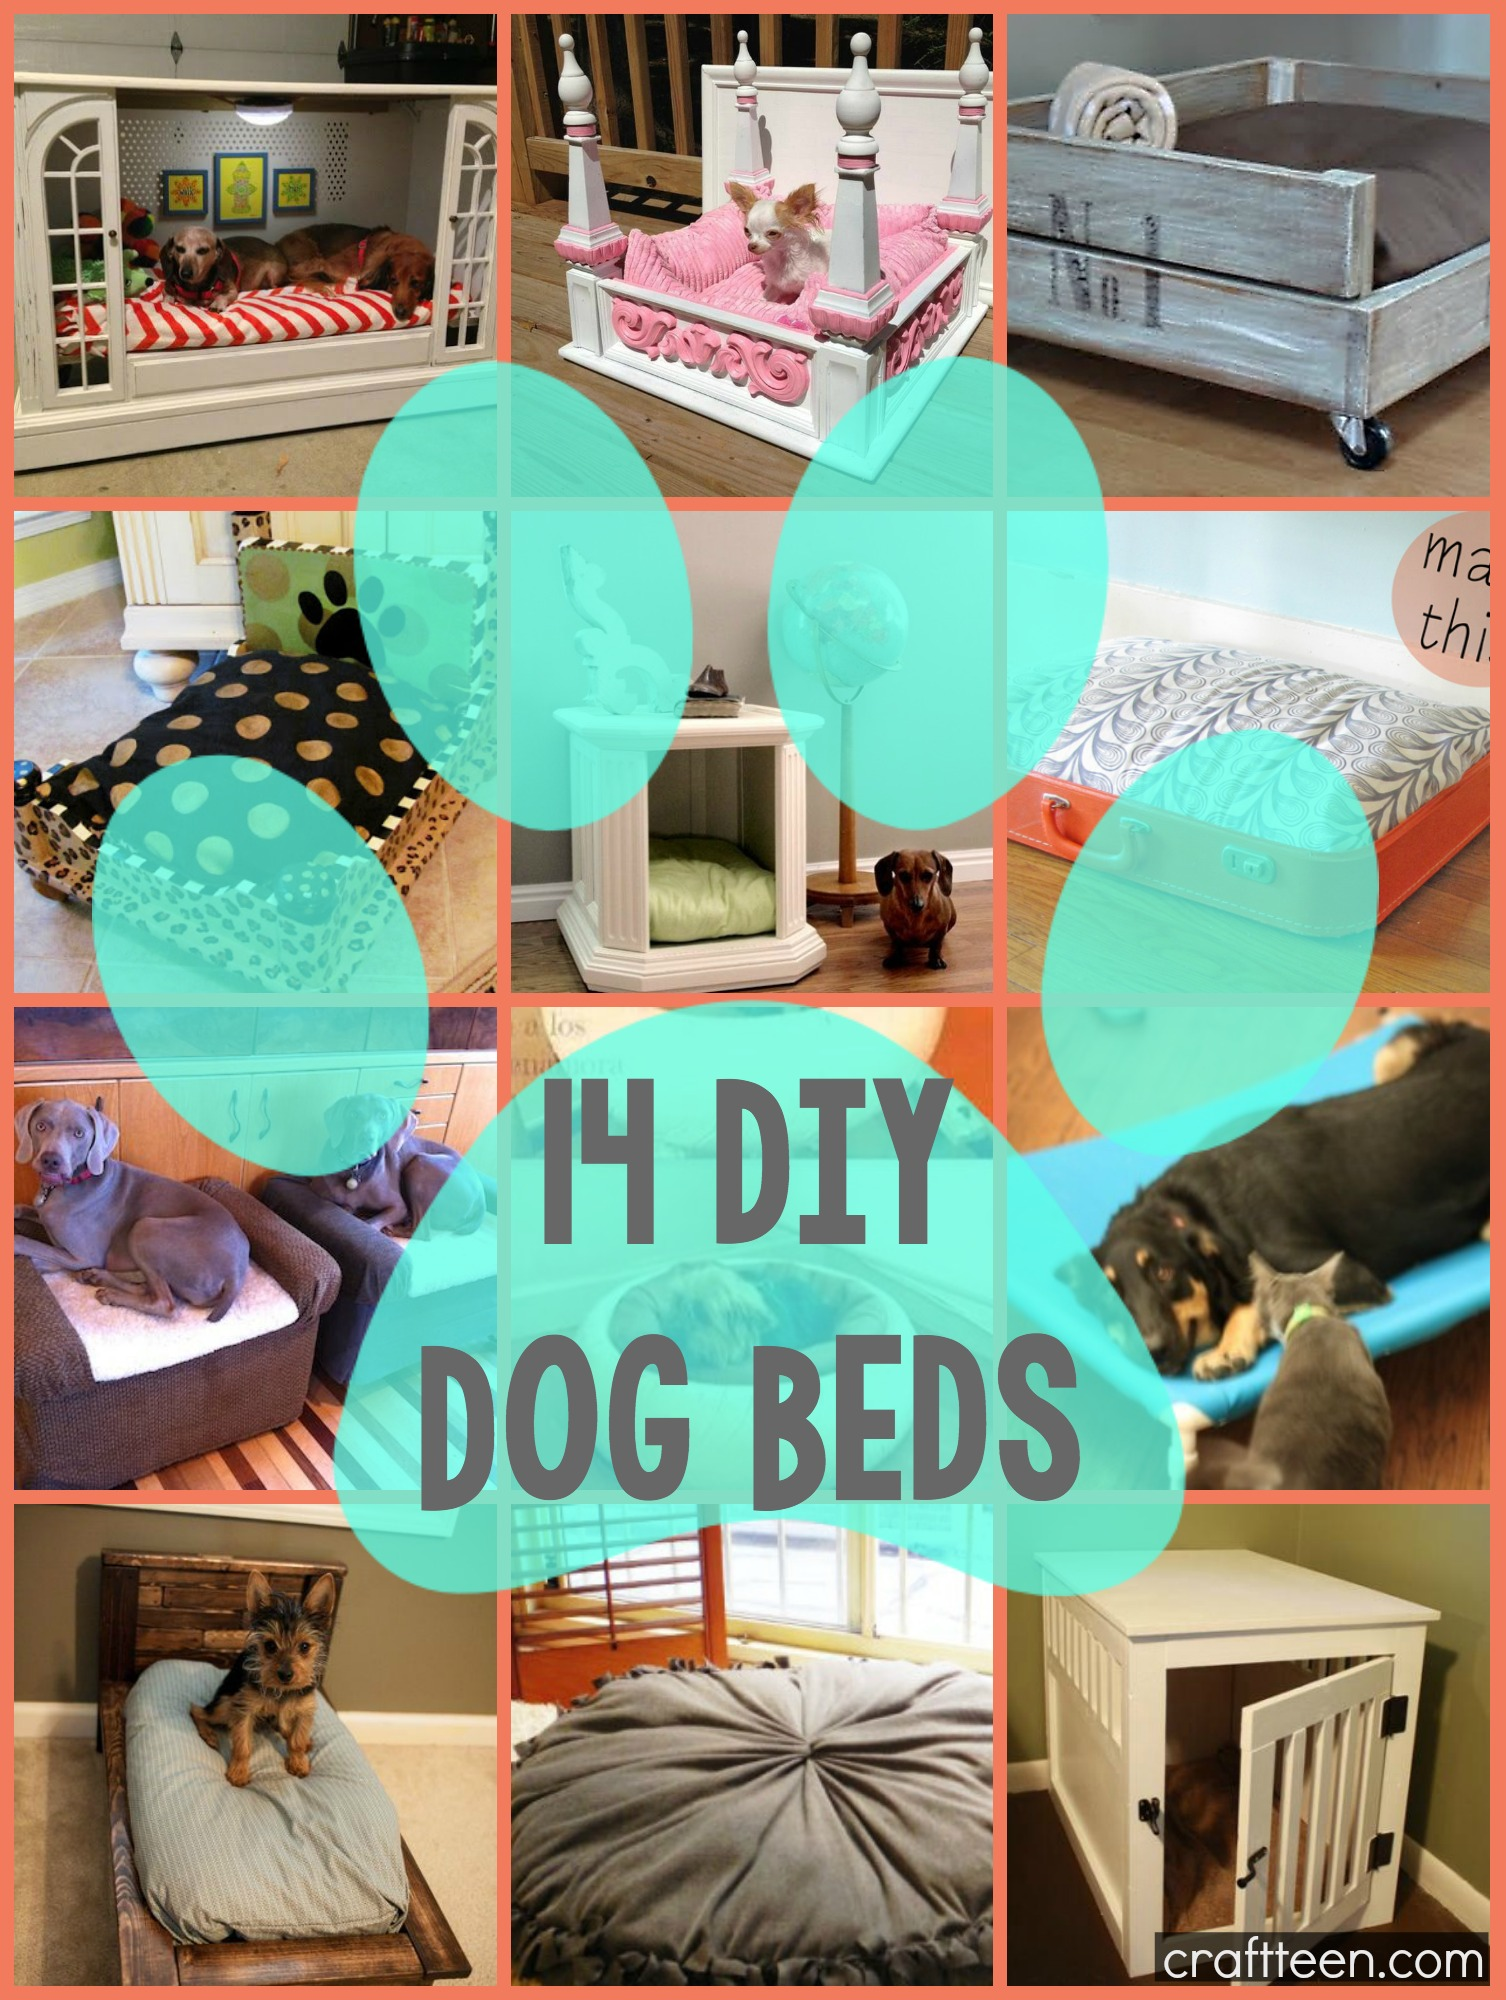 14_DIY_Dog_Beds